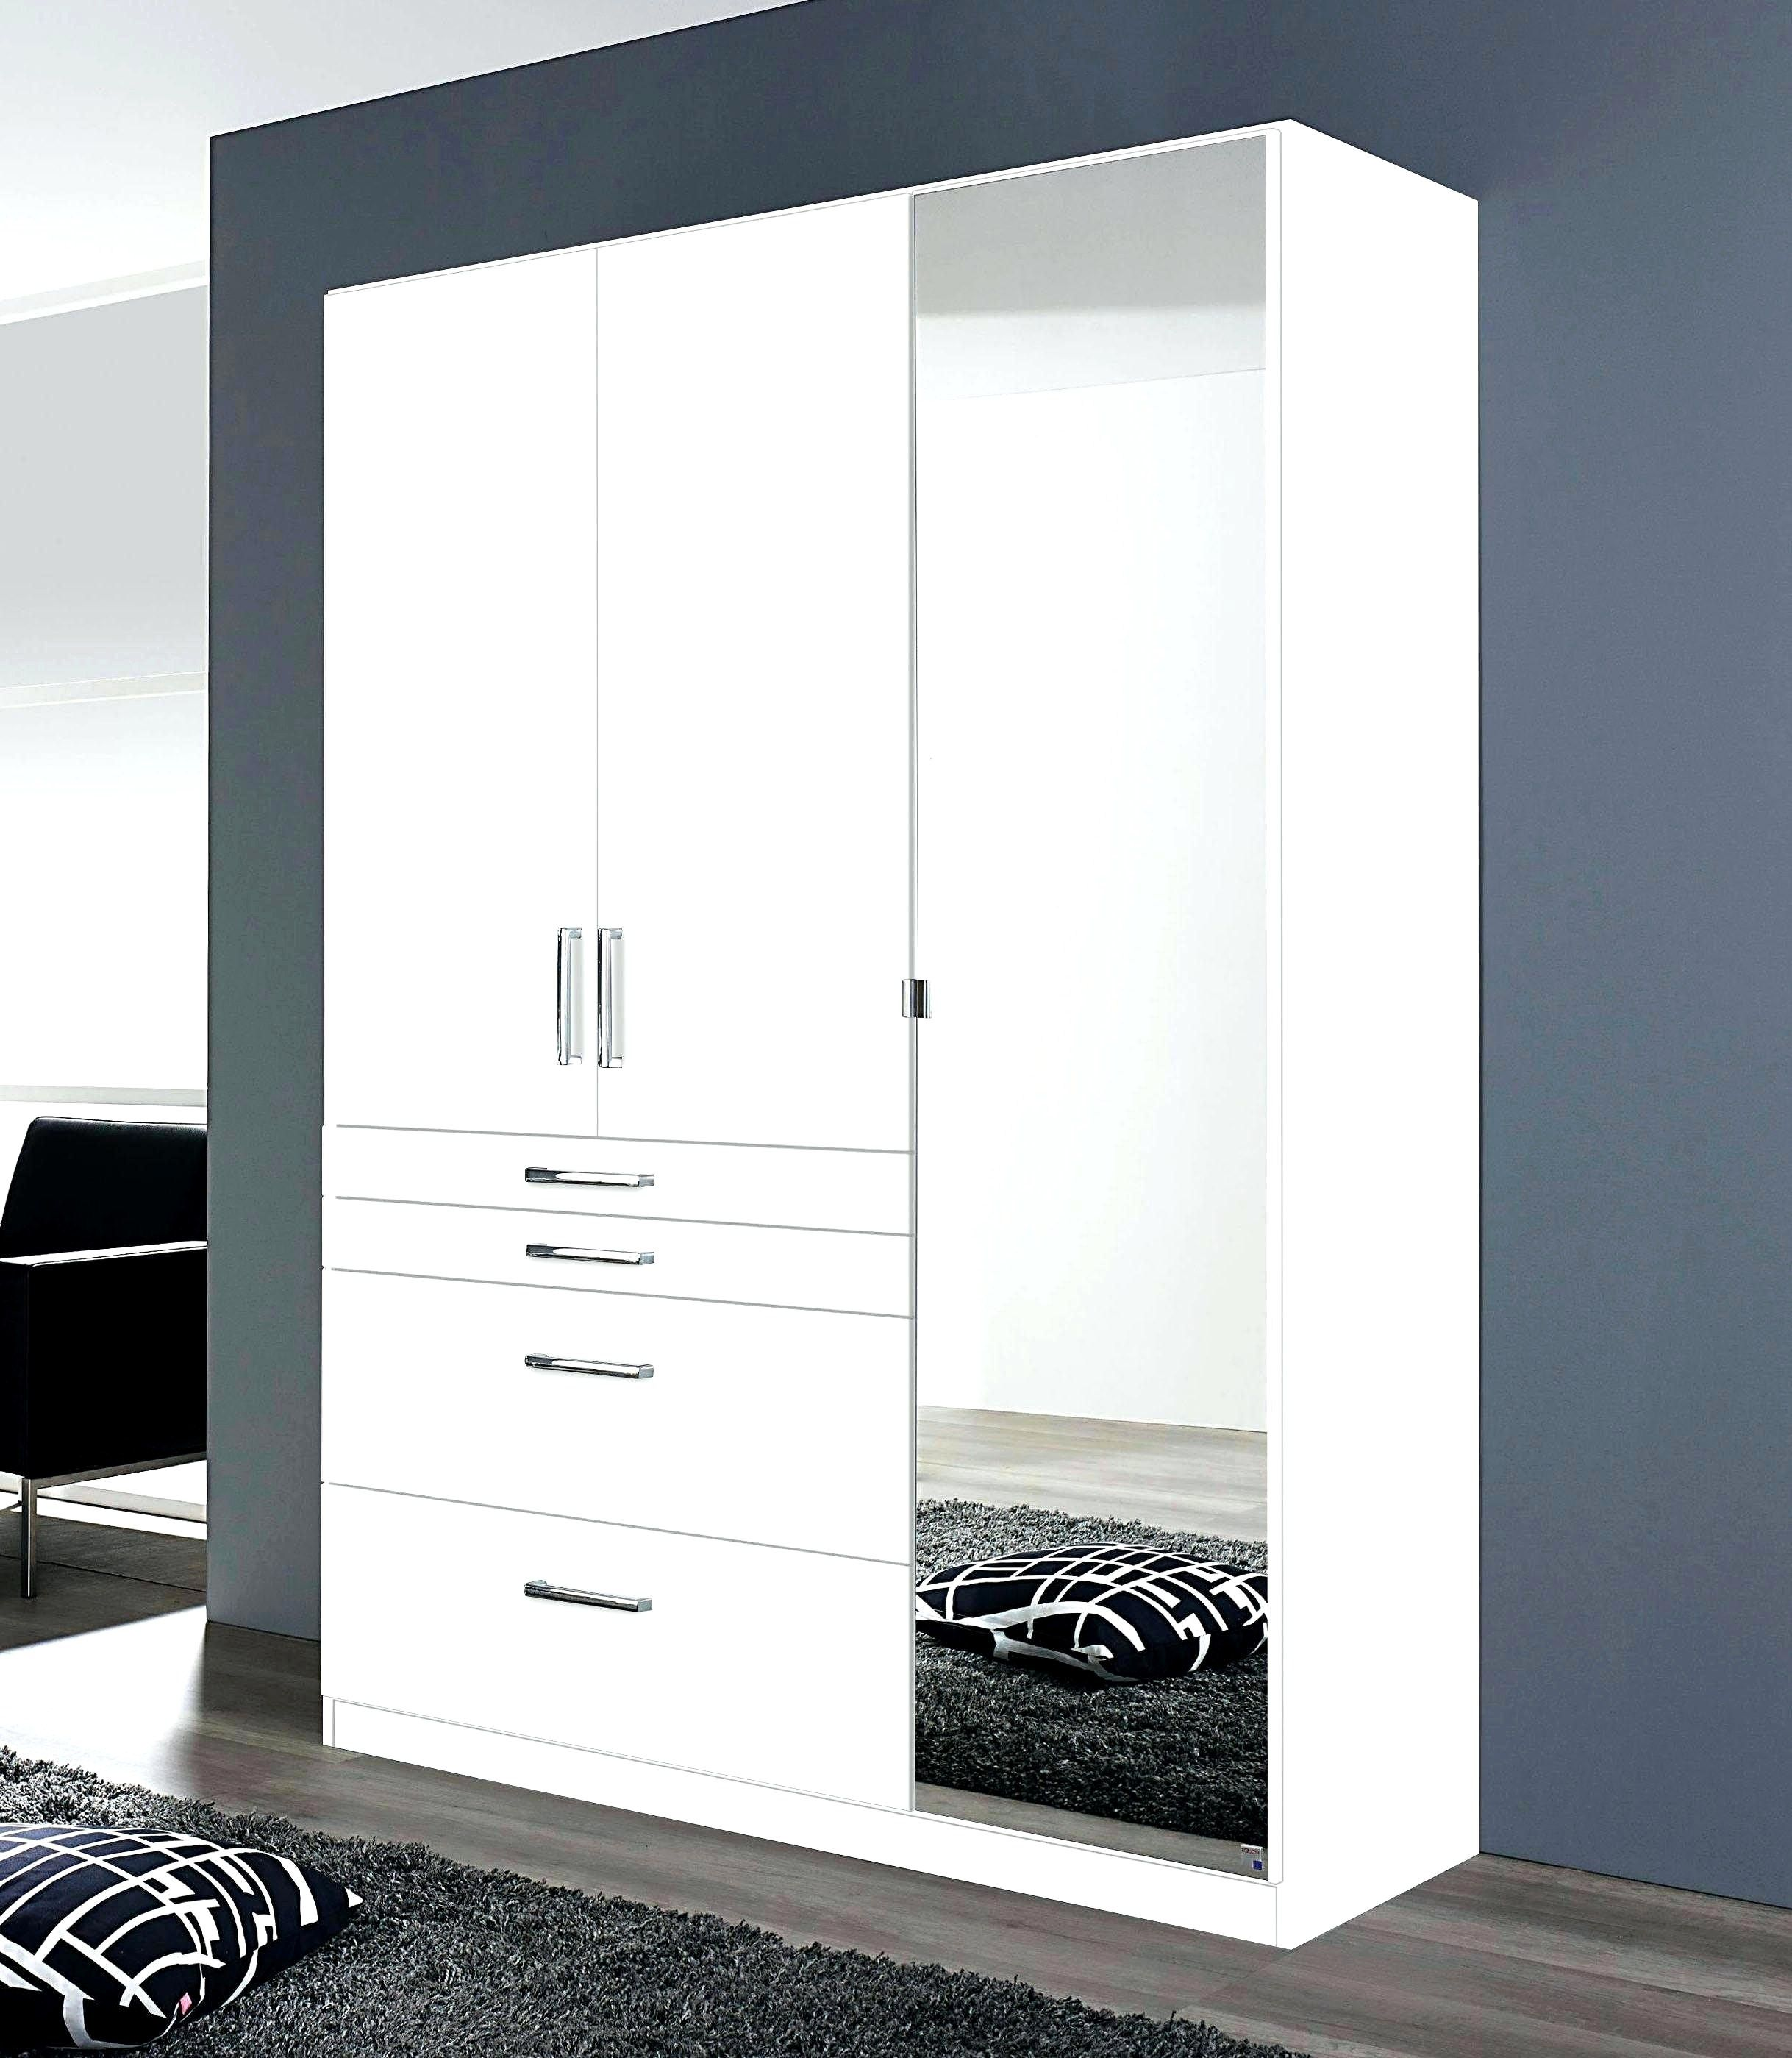 Xxl Lutz Begehbarer Kleiderschrank In 2020 Cupboard Design White Cupboards Wardrobe Room